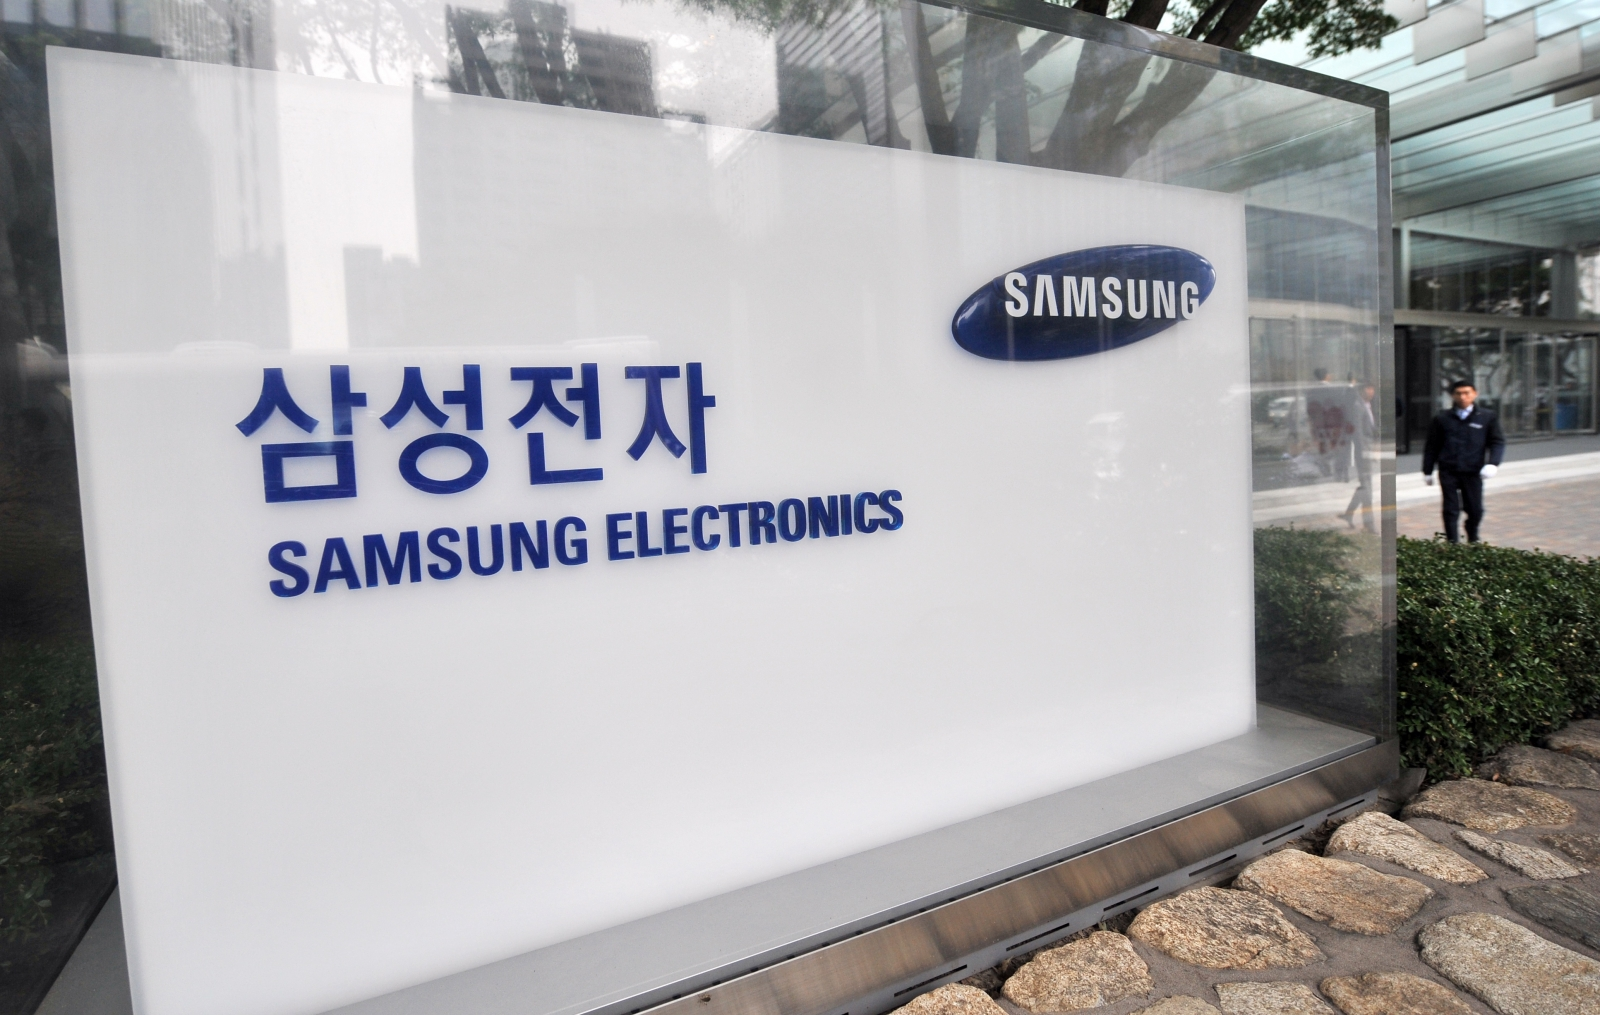 Samsung acquires Harman for $8bn